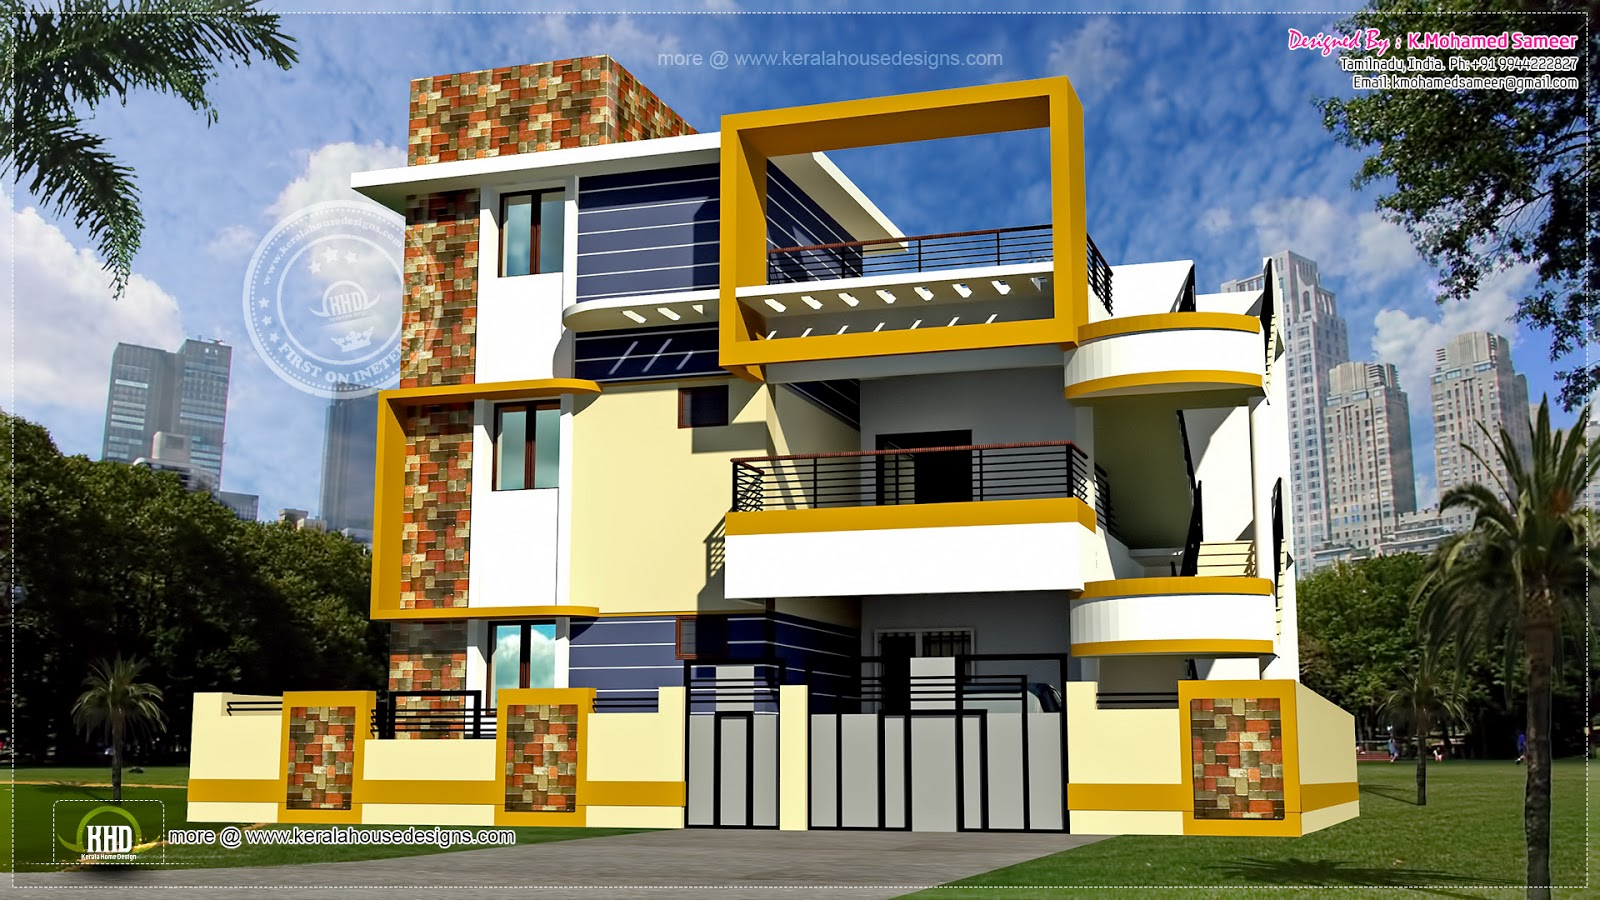 Modern 3 floor tamilnadu house design home kerala plans for Tamilnadu home design photos